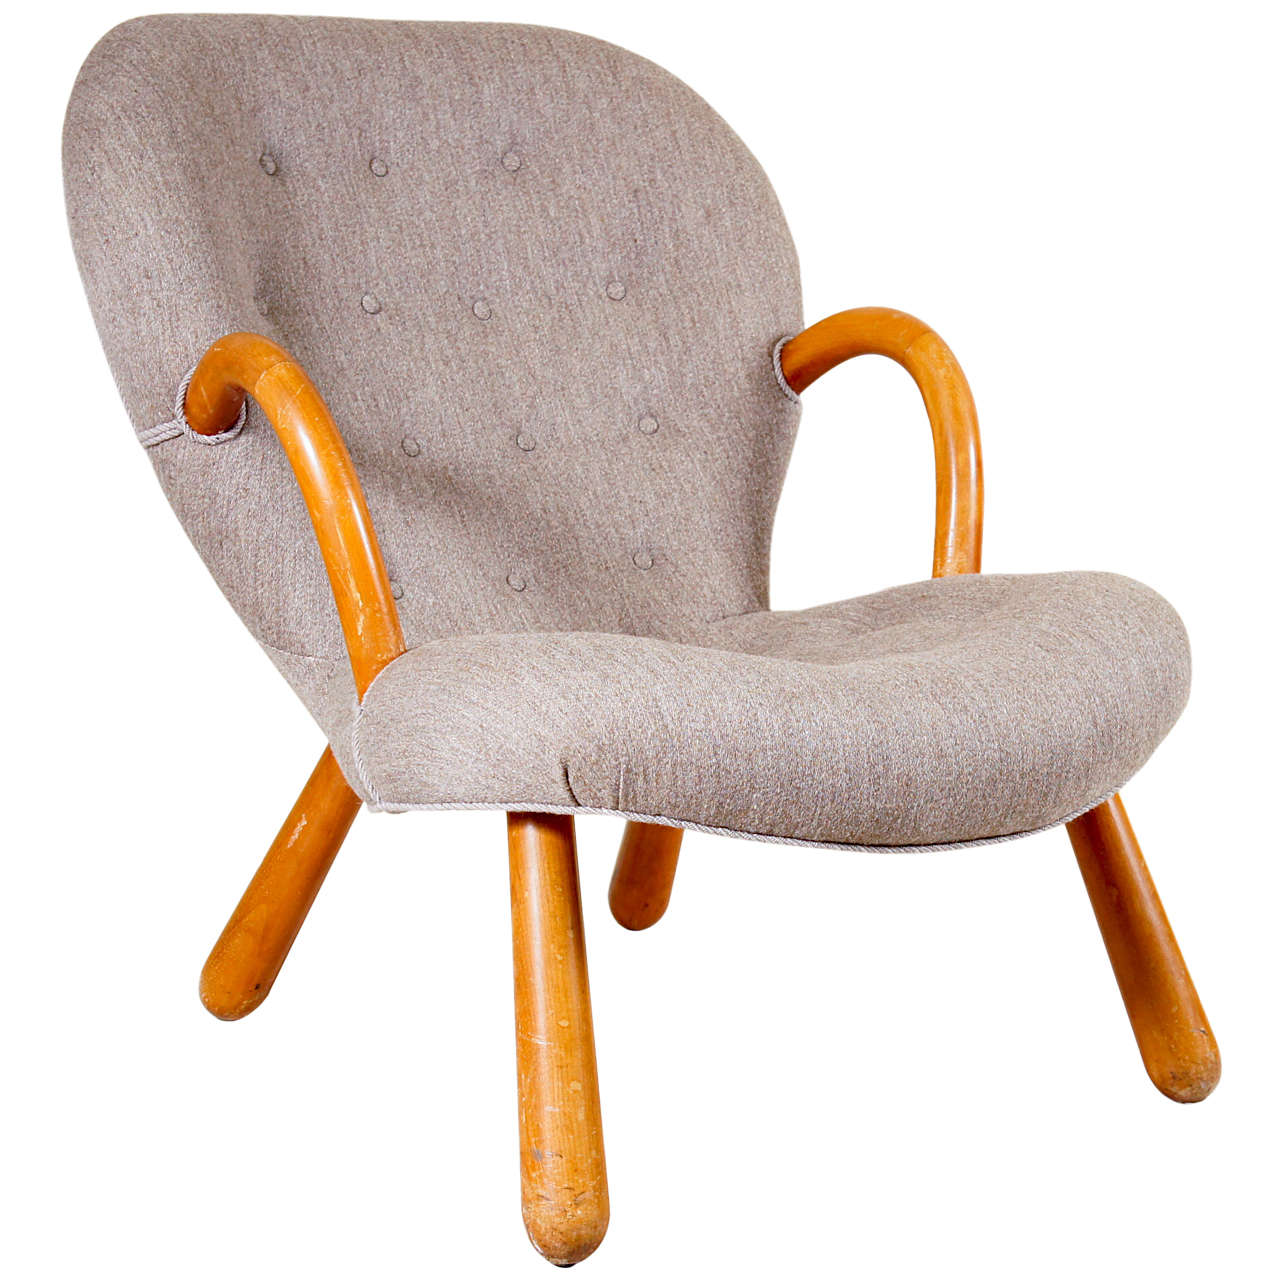 'Clam Chair' by Philip Arctander 1